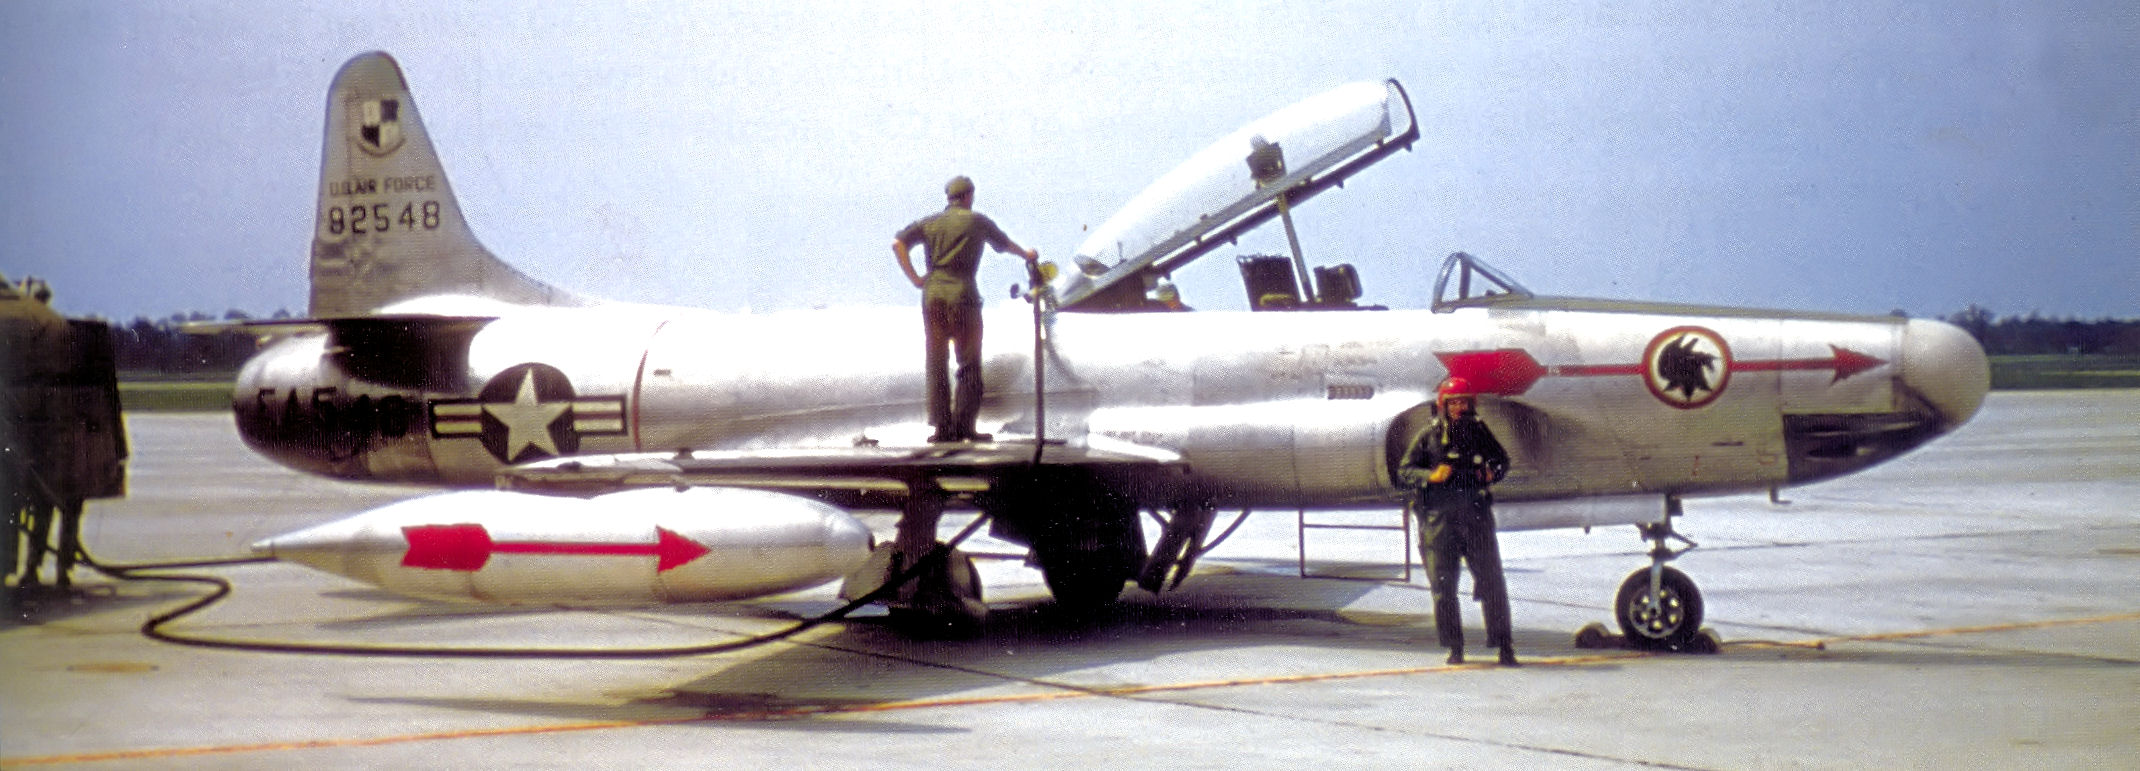 File:2d Fighter-Interceptor Squadron Lockheed F-94A-5-LO 49